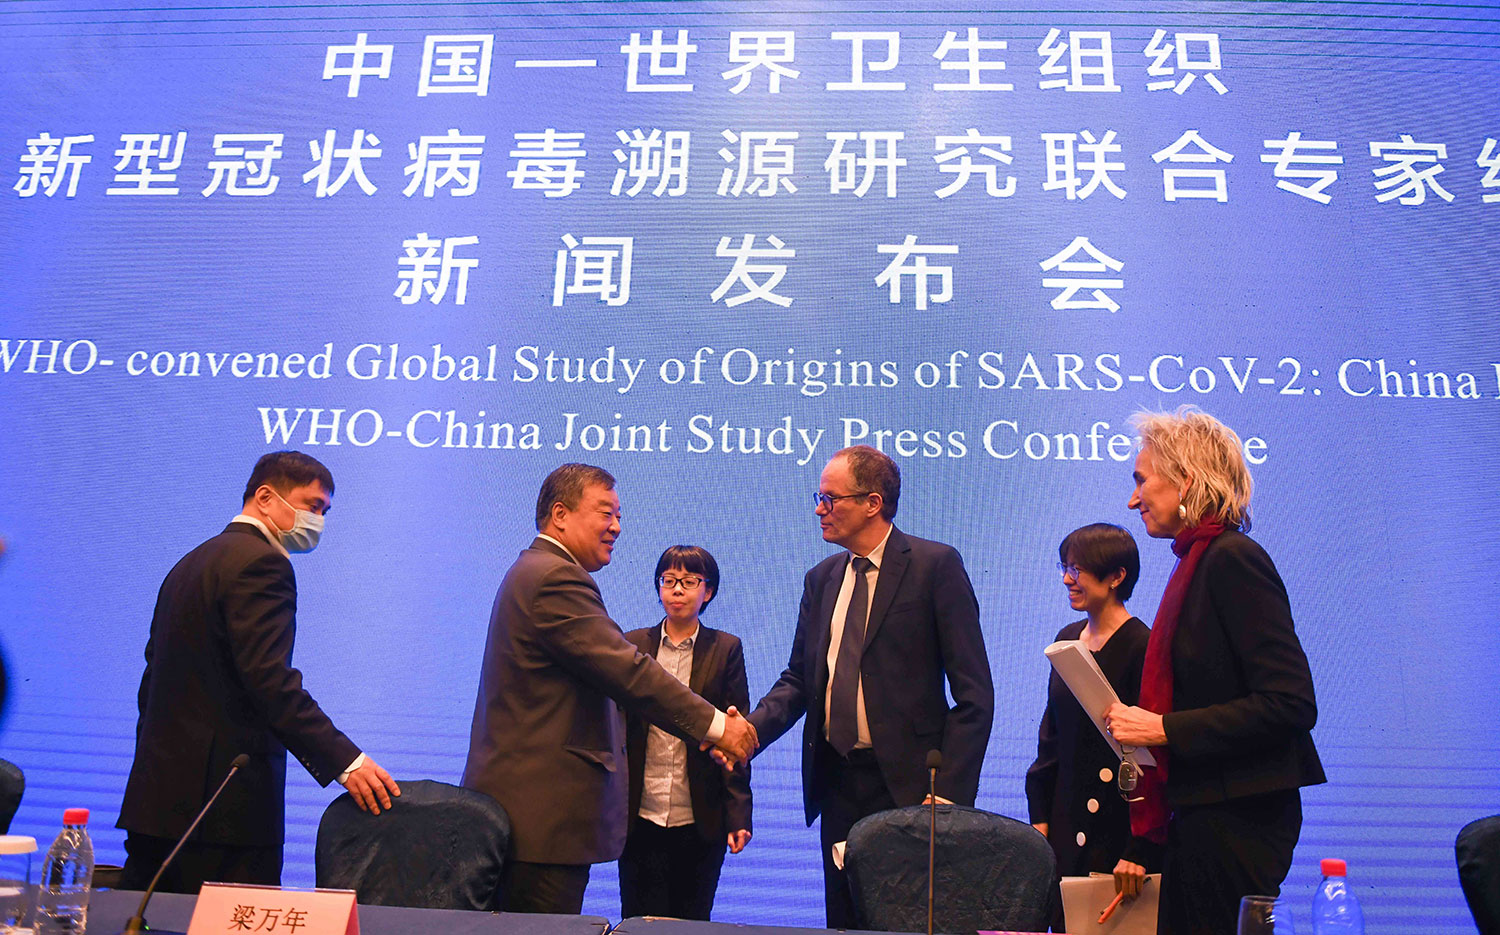 Concerns About The WHO-China Joint Study Or Why We Don't Know More Than Before?